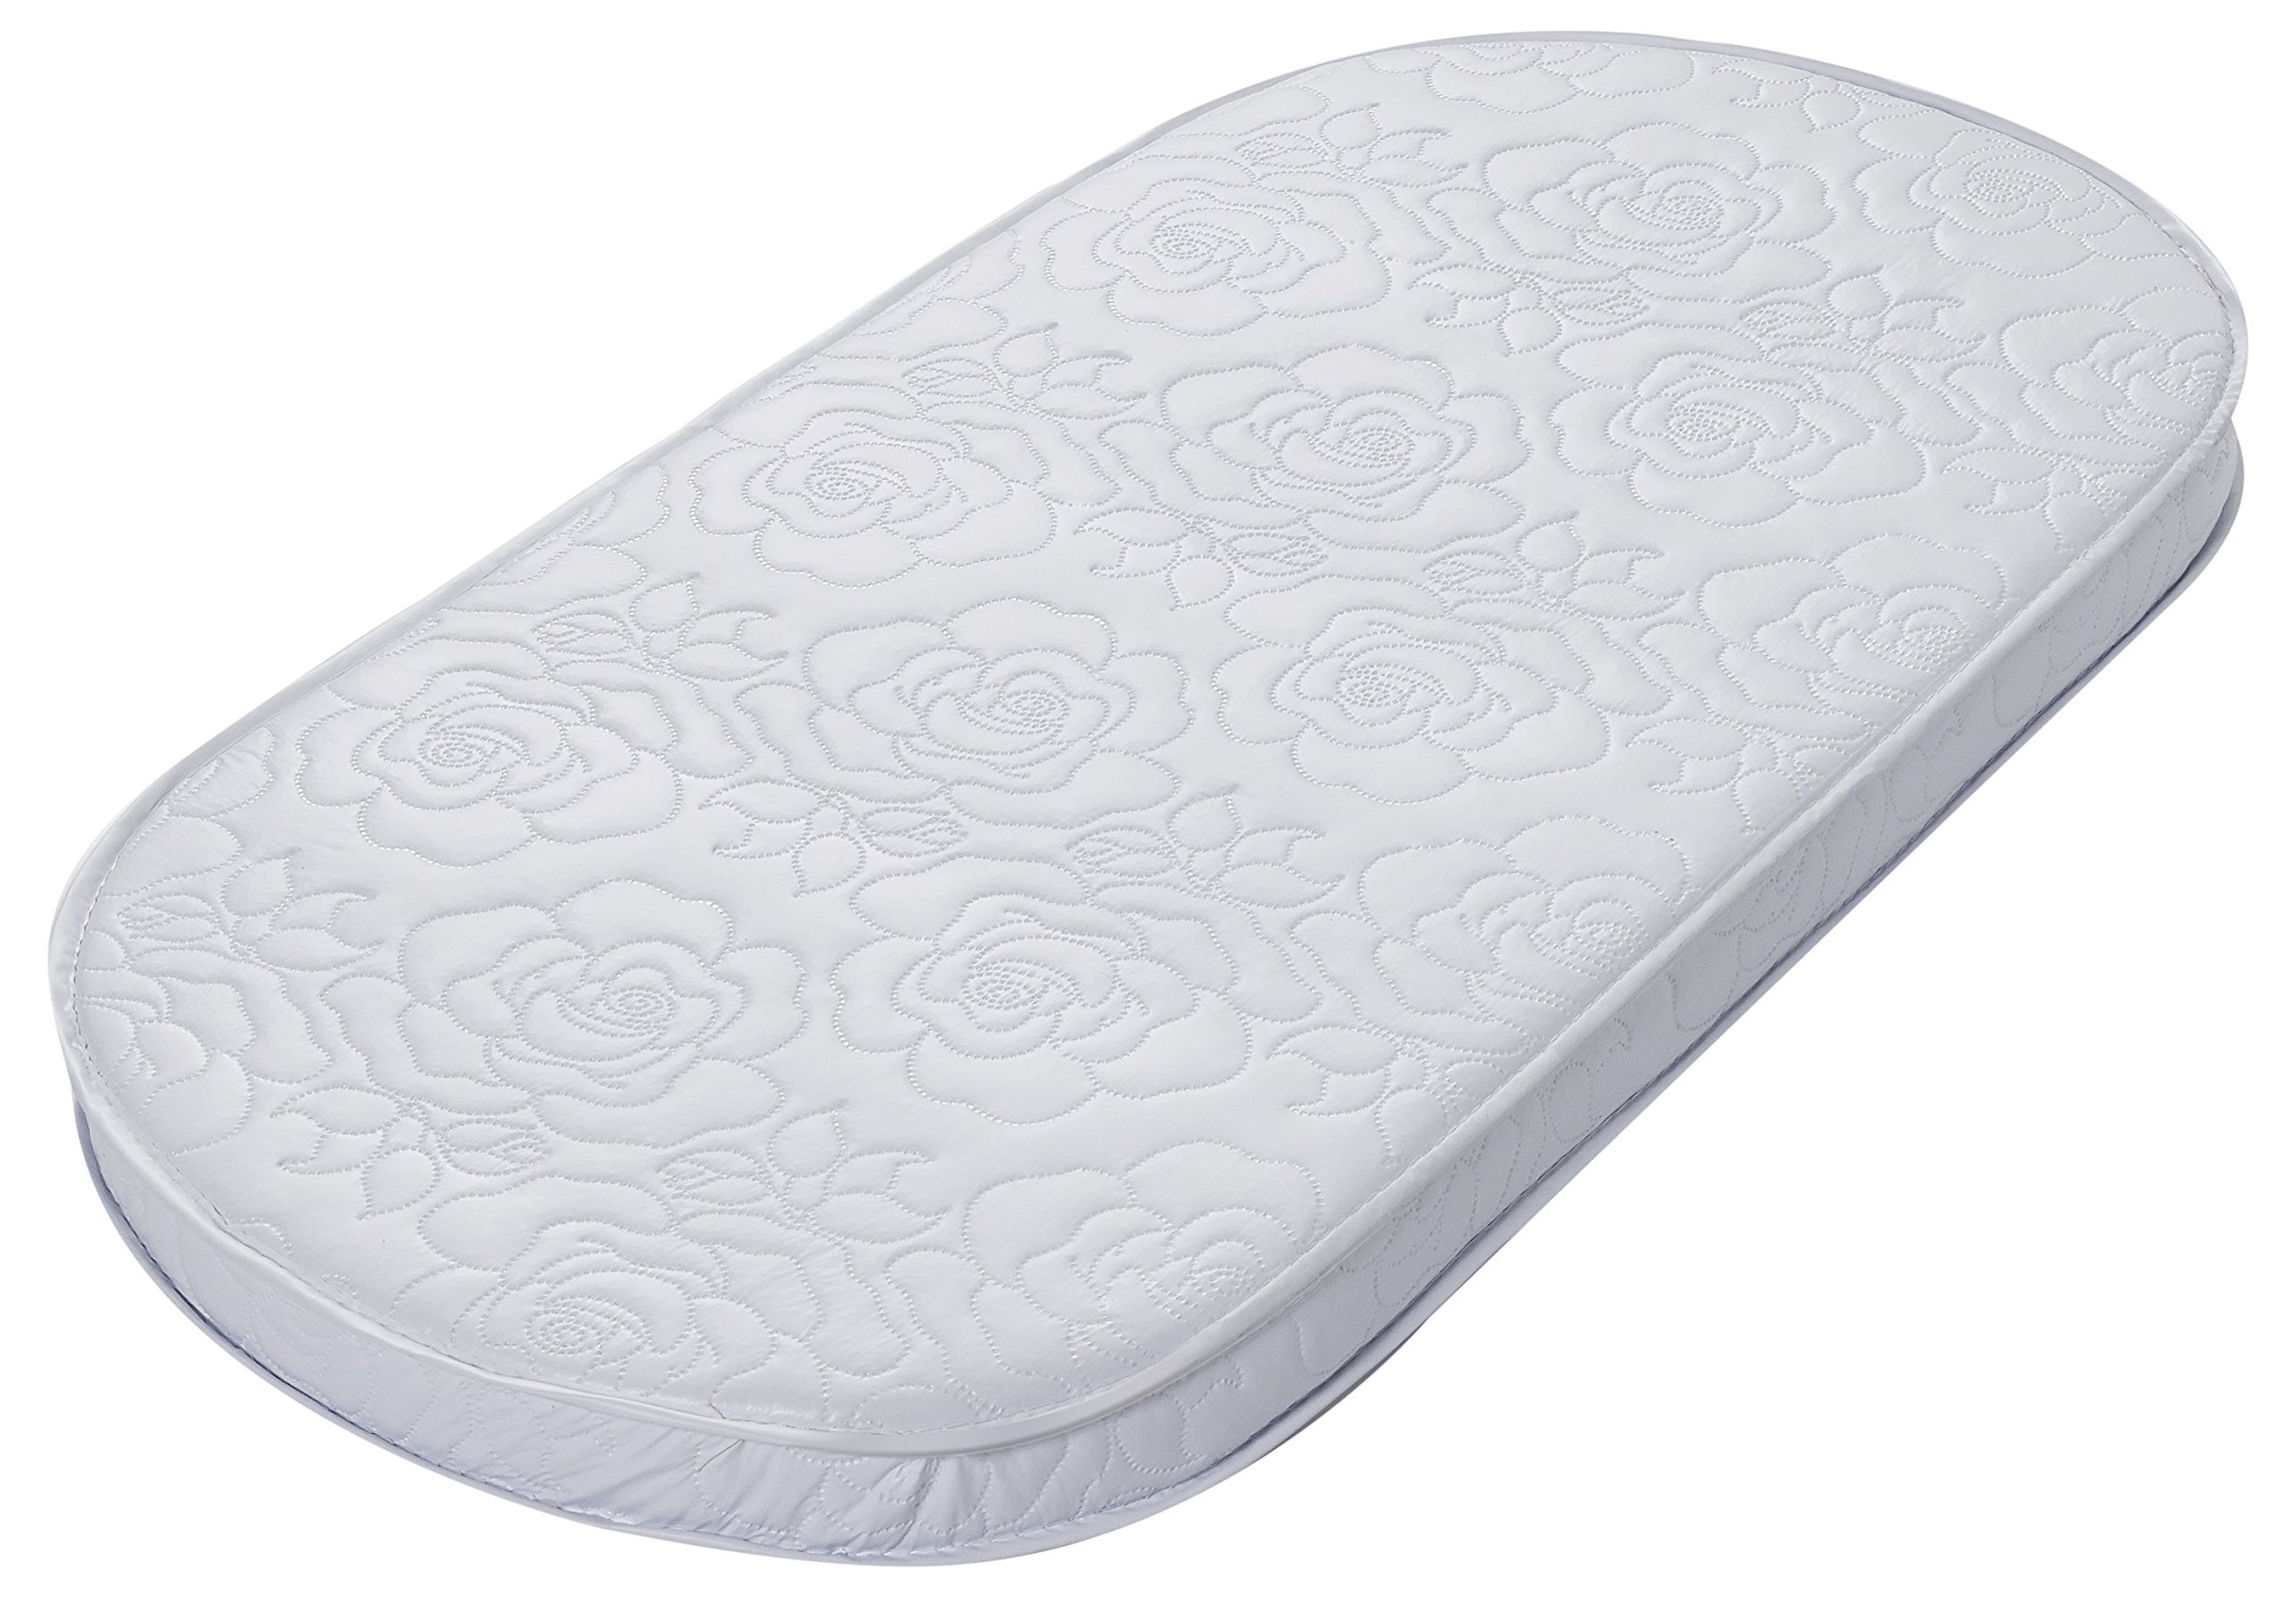 Big Oshi Waterproof Oval Baby Bassinet Mattress - Waterproof Exterior - Thick, Soft, Breathable Foam Interior - Comfy, Padded Design, Also Fits Portable Bassinets - 16'' x 32'' x 2'' by Big Oshi